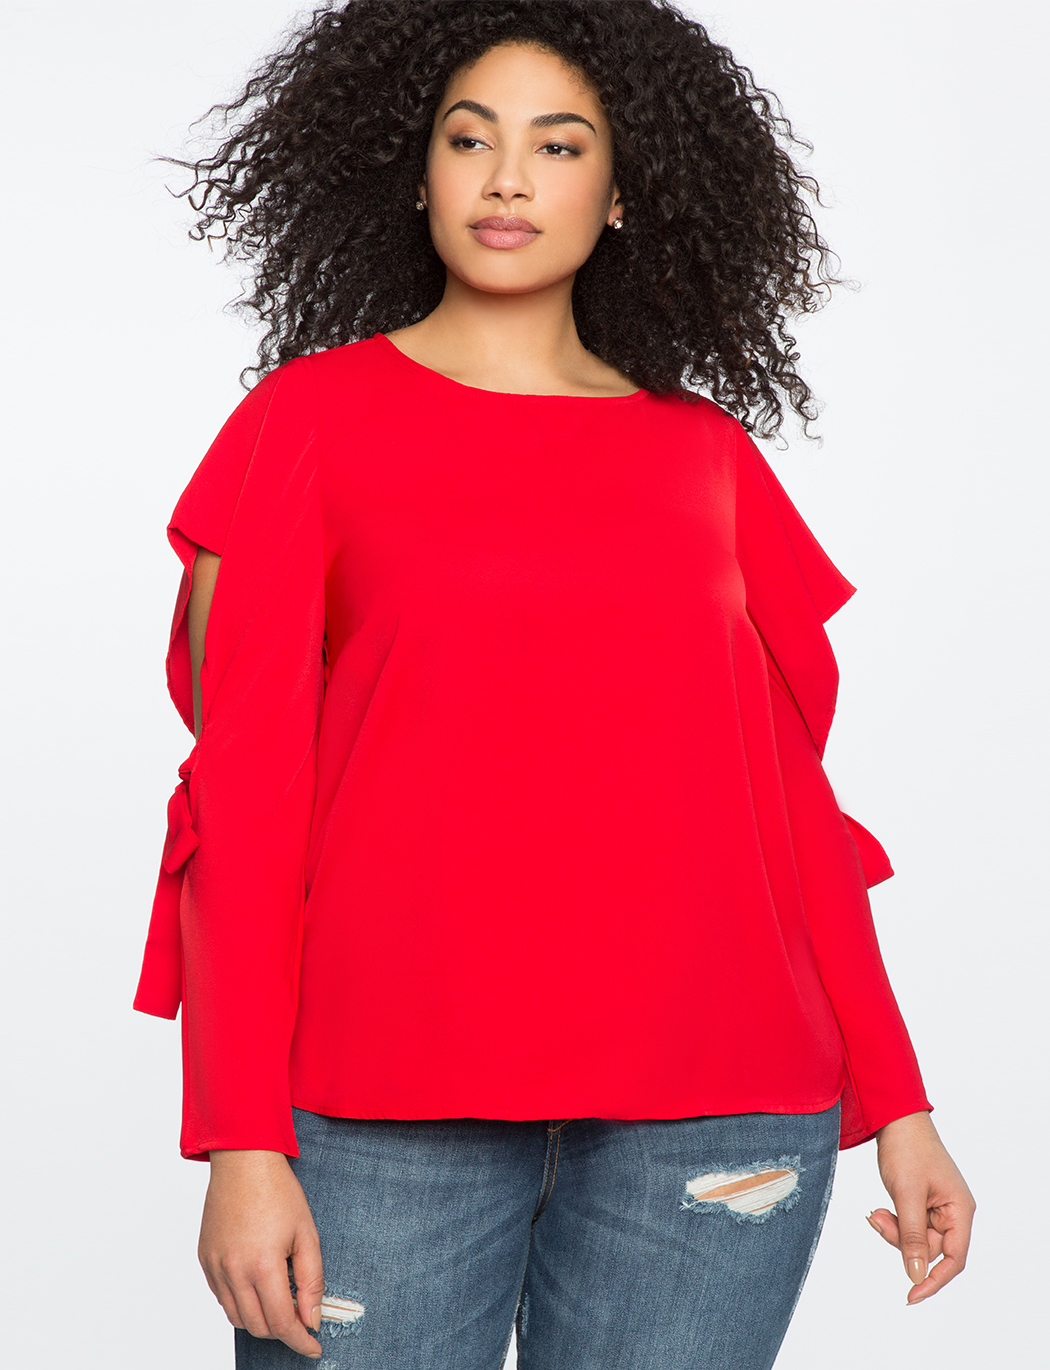 Cutout Sleeve Top With Tie Detail